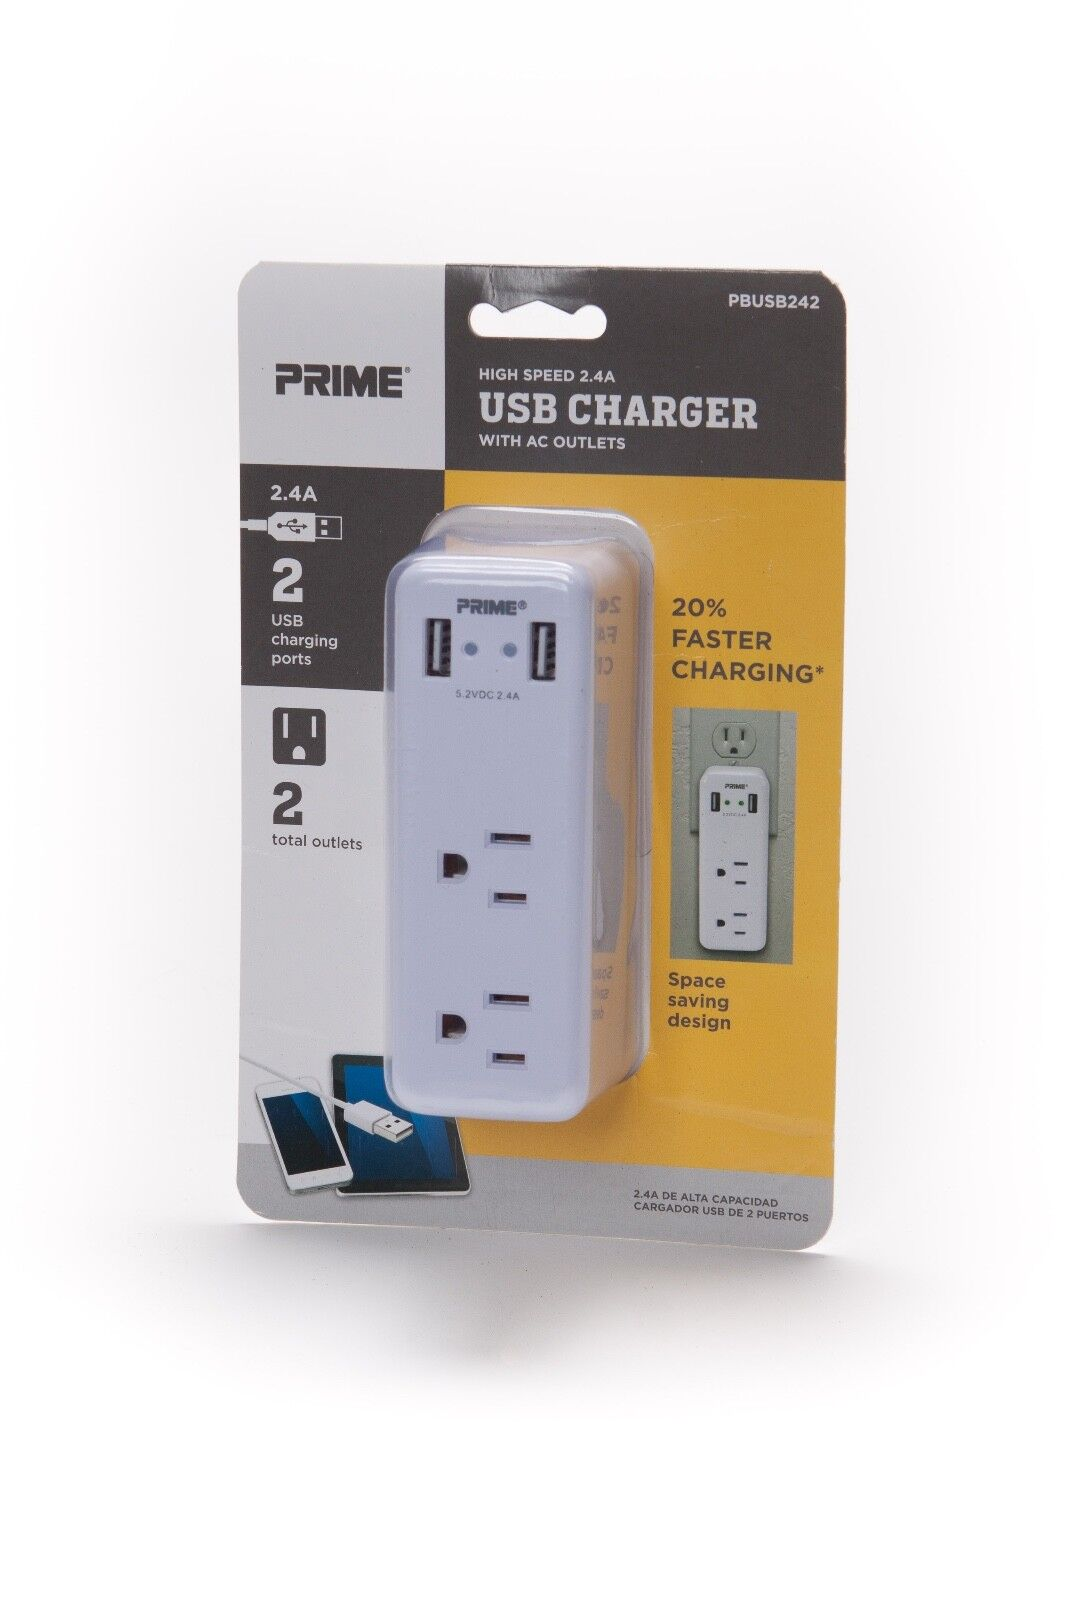 PRIME USB CHARGER High Speed 2.4A with AC Outlets part# pbus